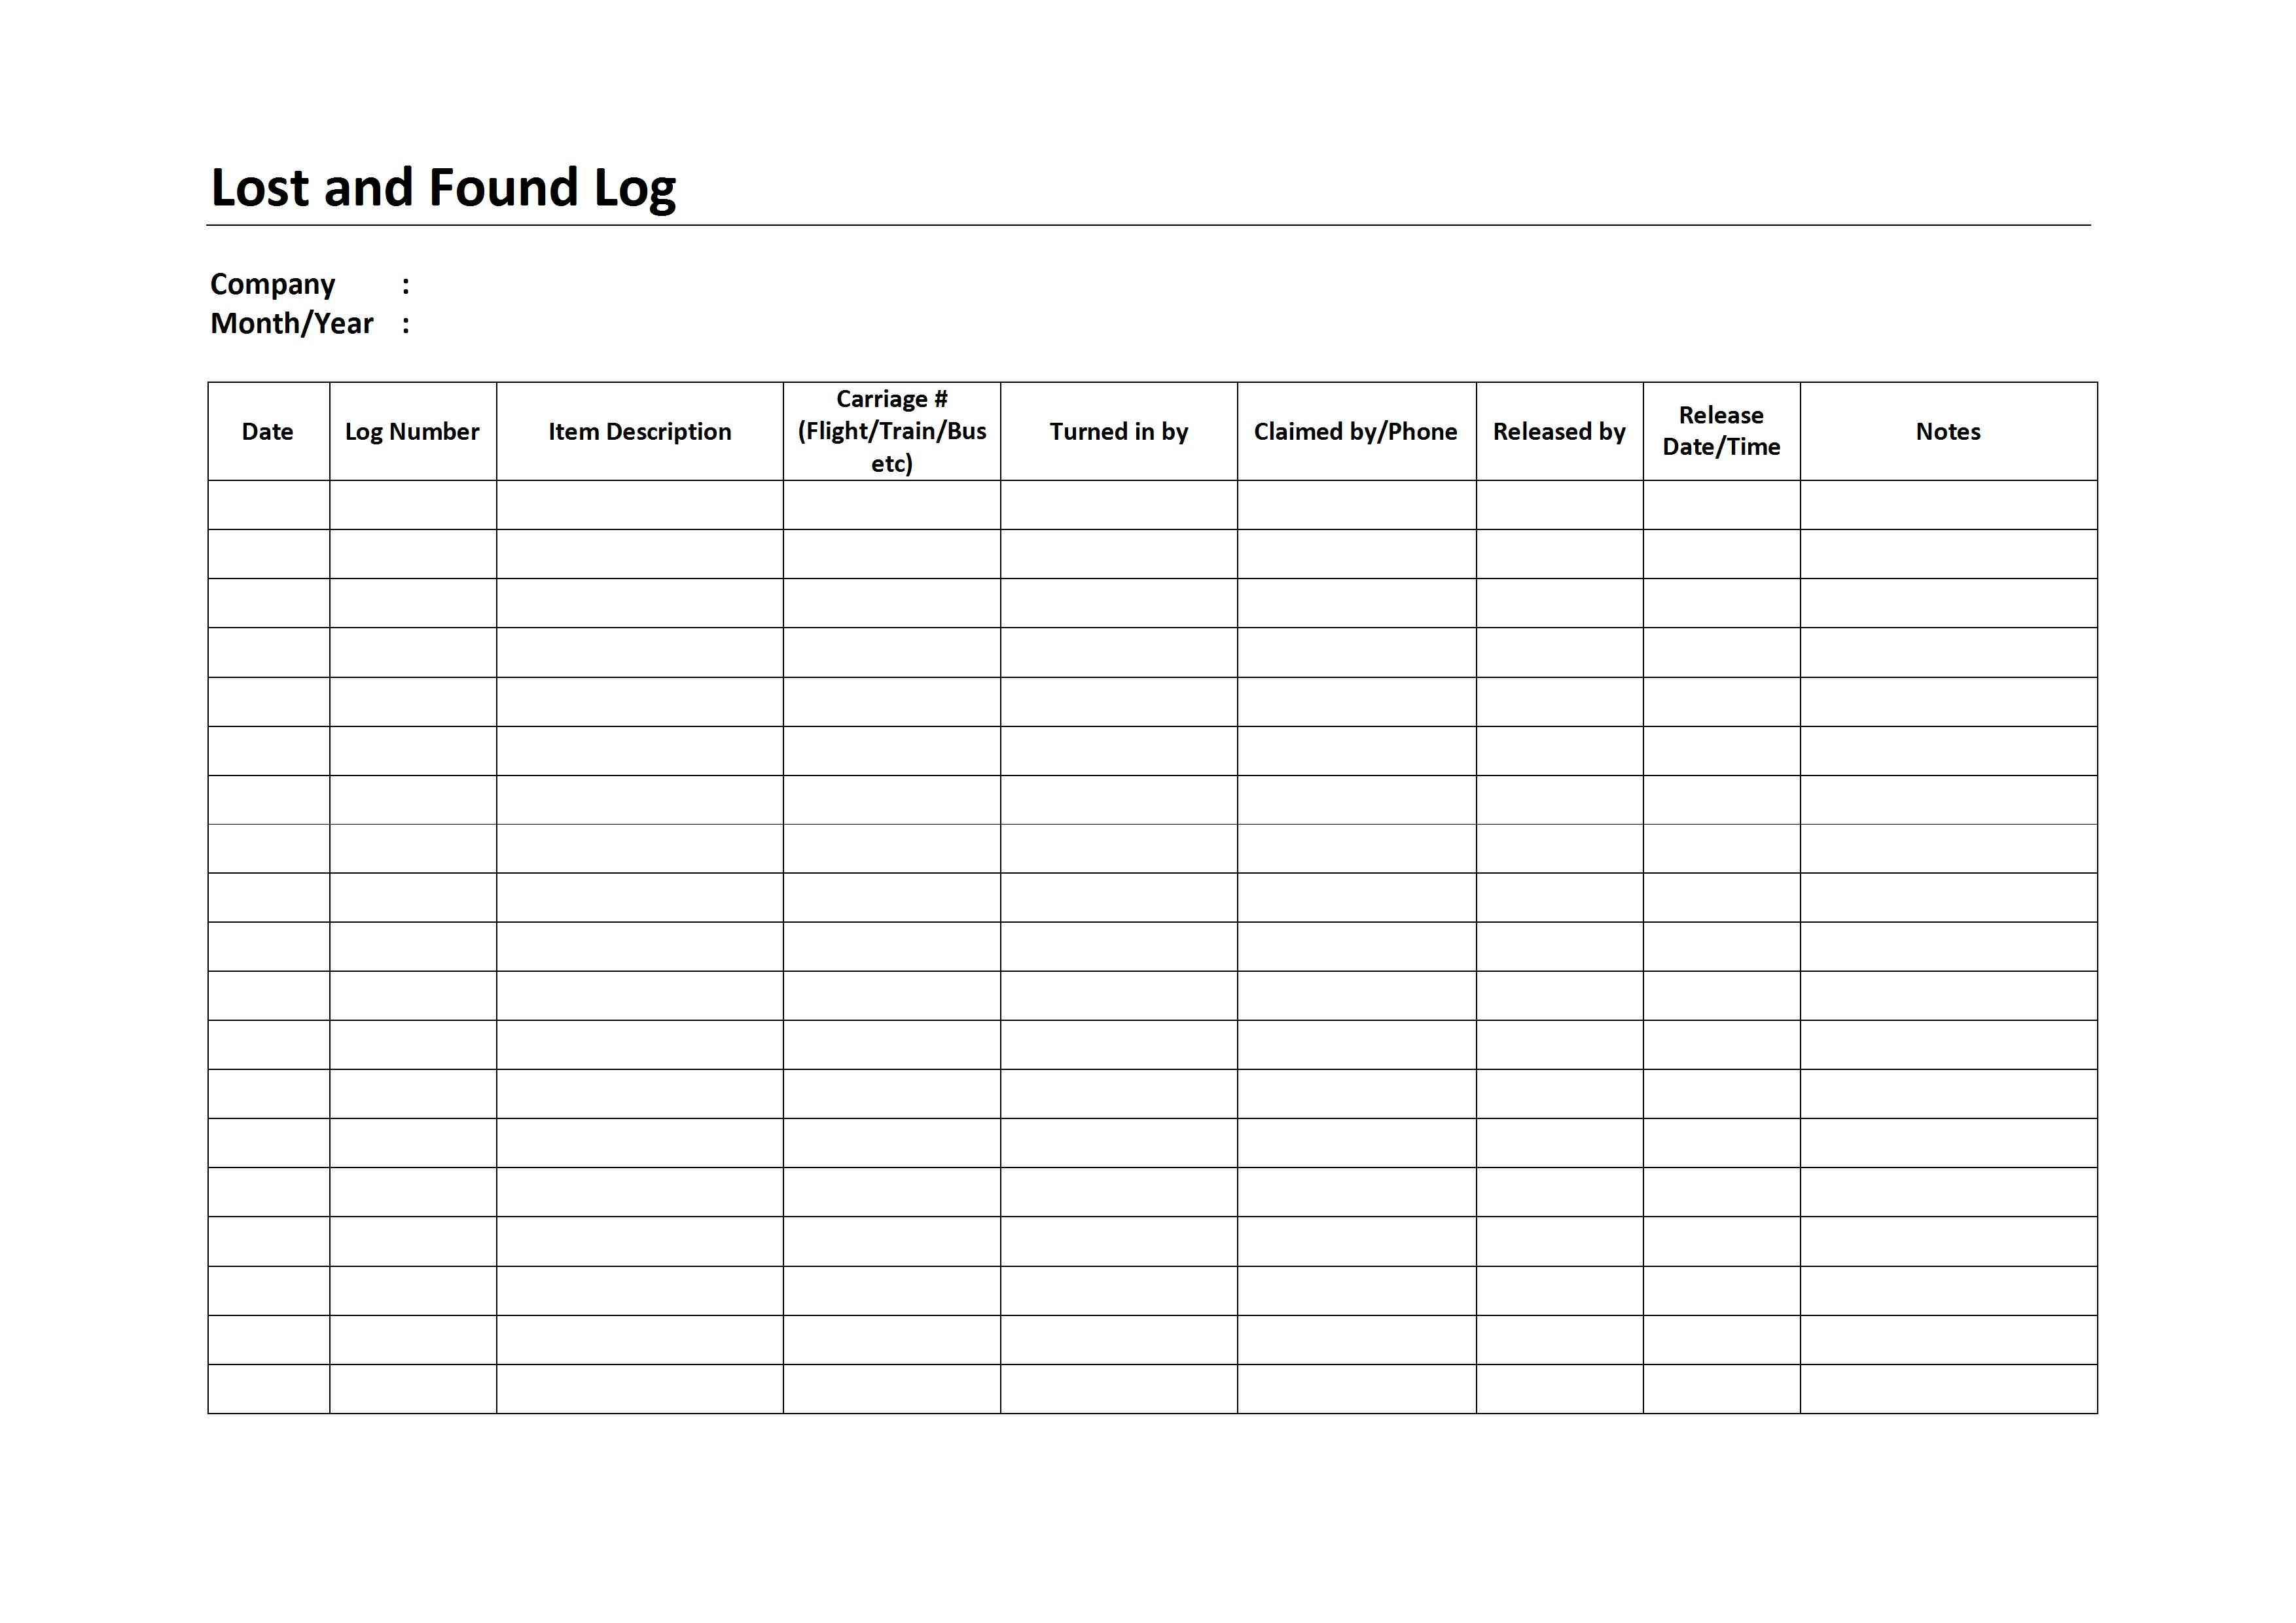 Lost and found book report